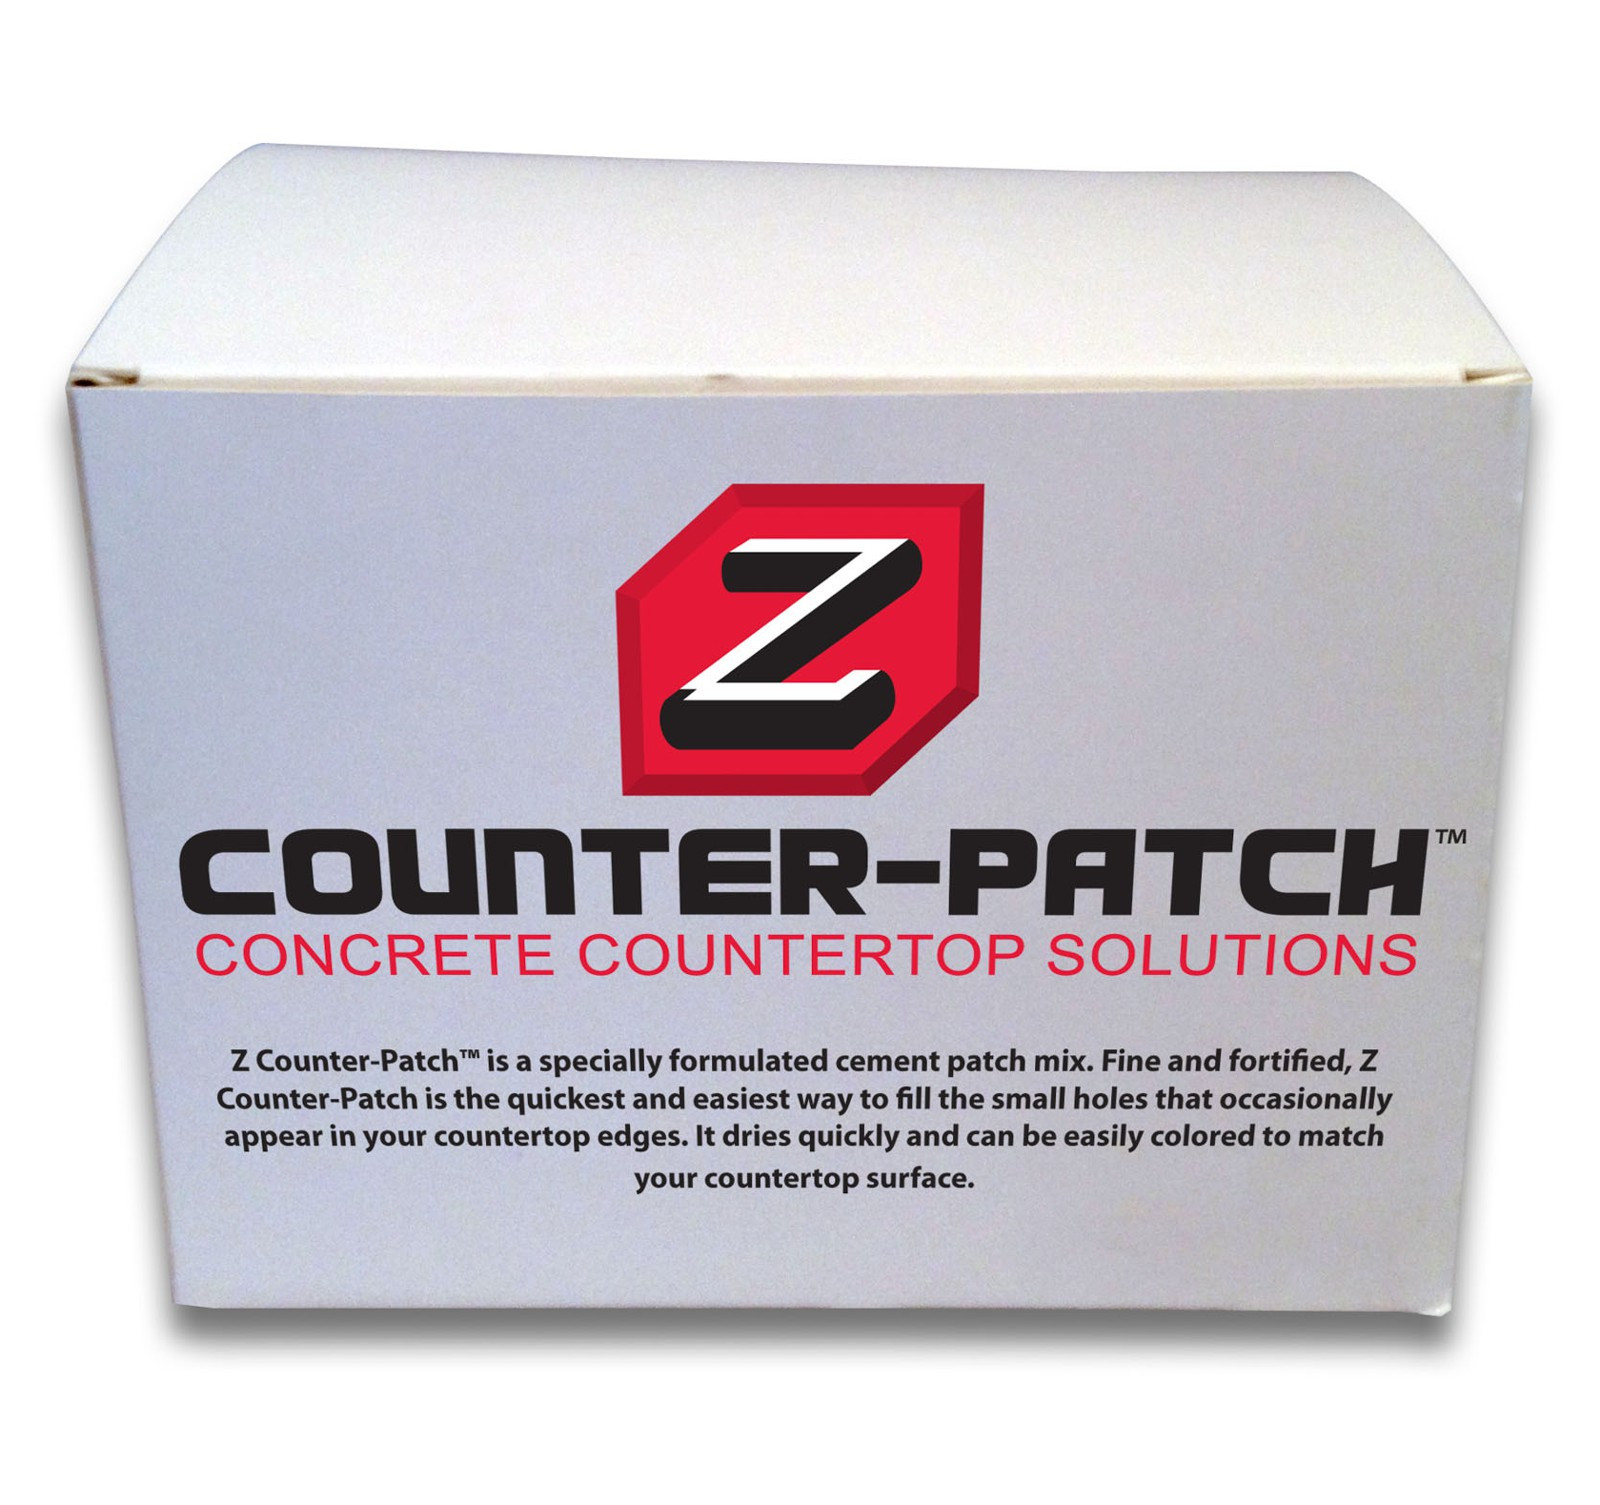 Z Counterform-Paikkausaine Z Counter-Patch betonitasoille-2